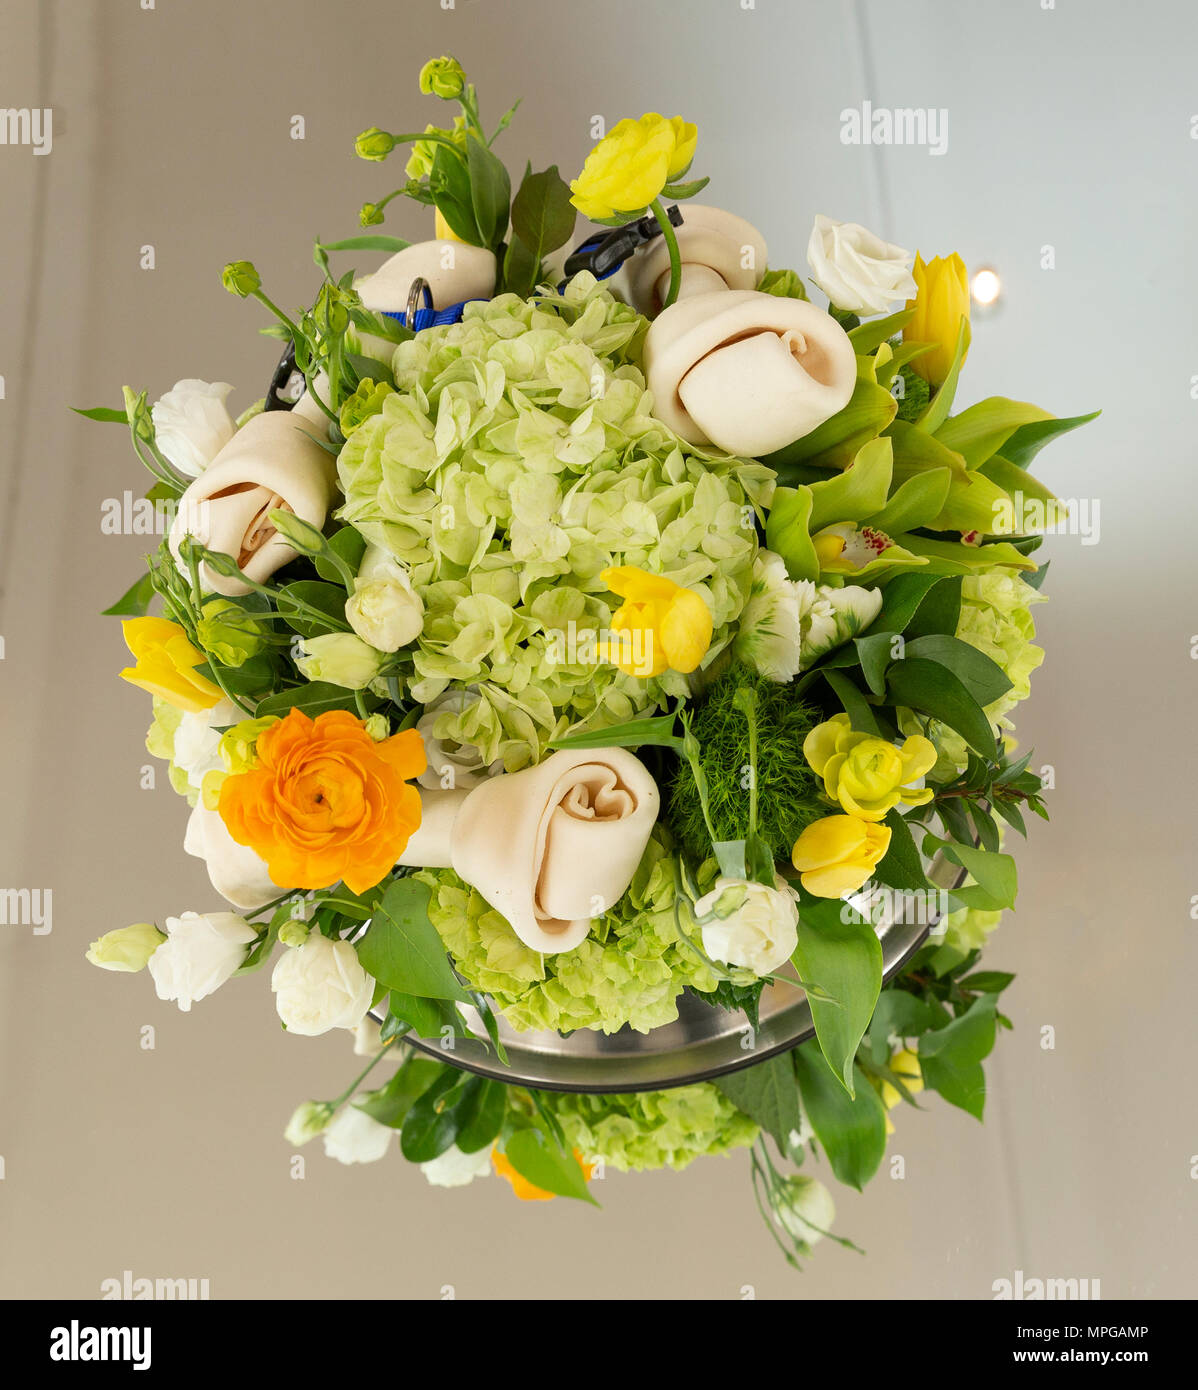 New York Ny May 23 2018 Dog Theme Flower Bouquet On Display At